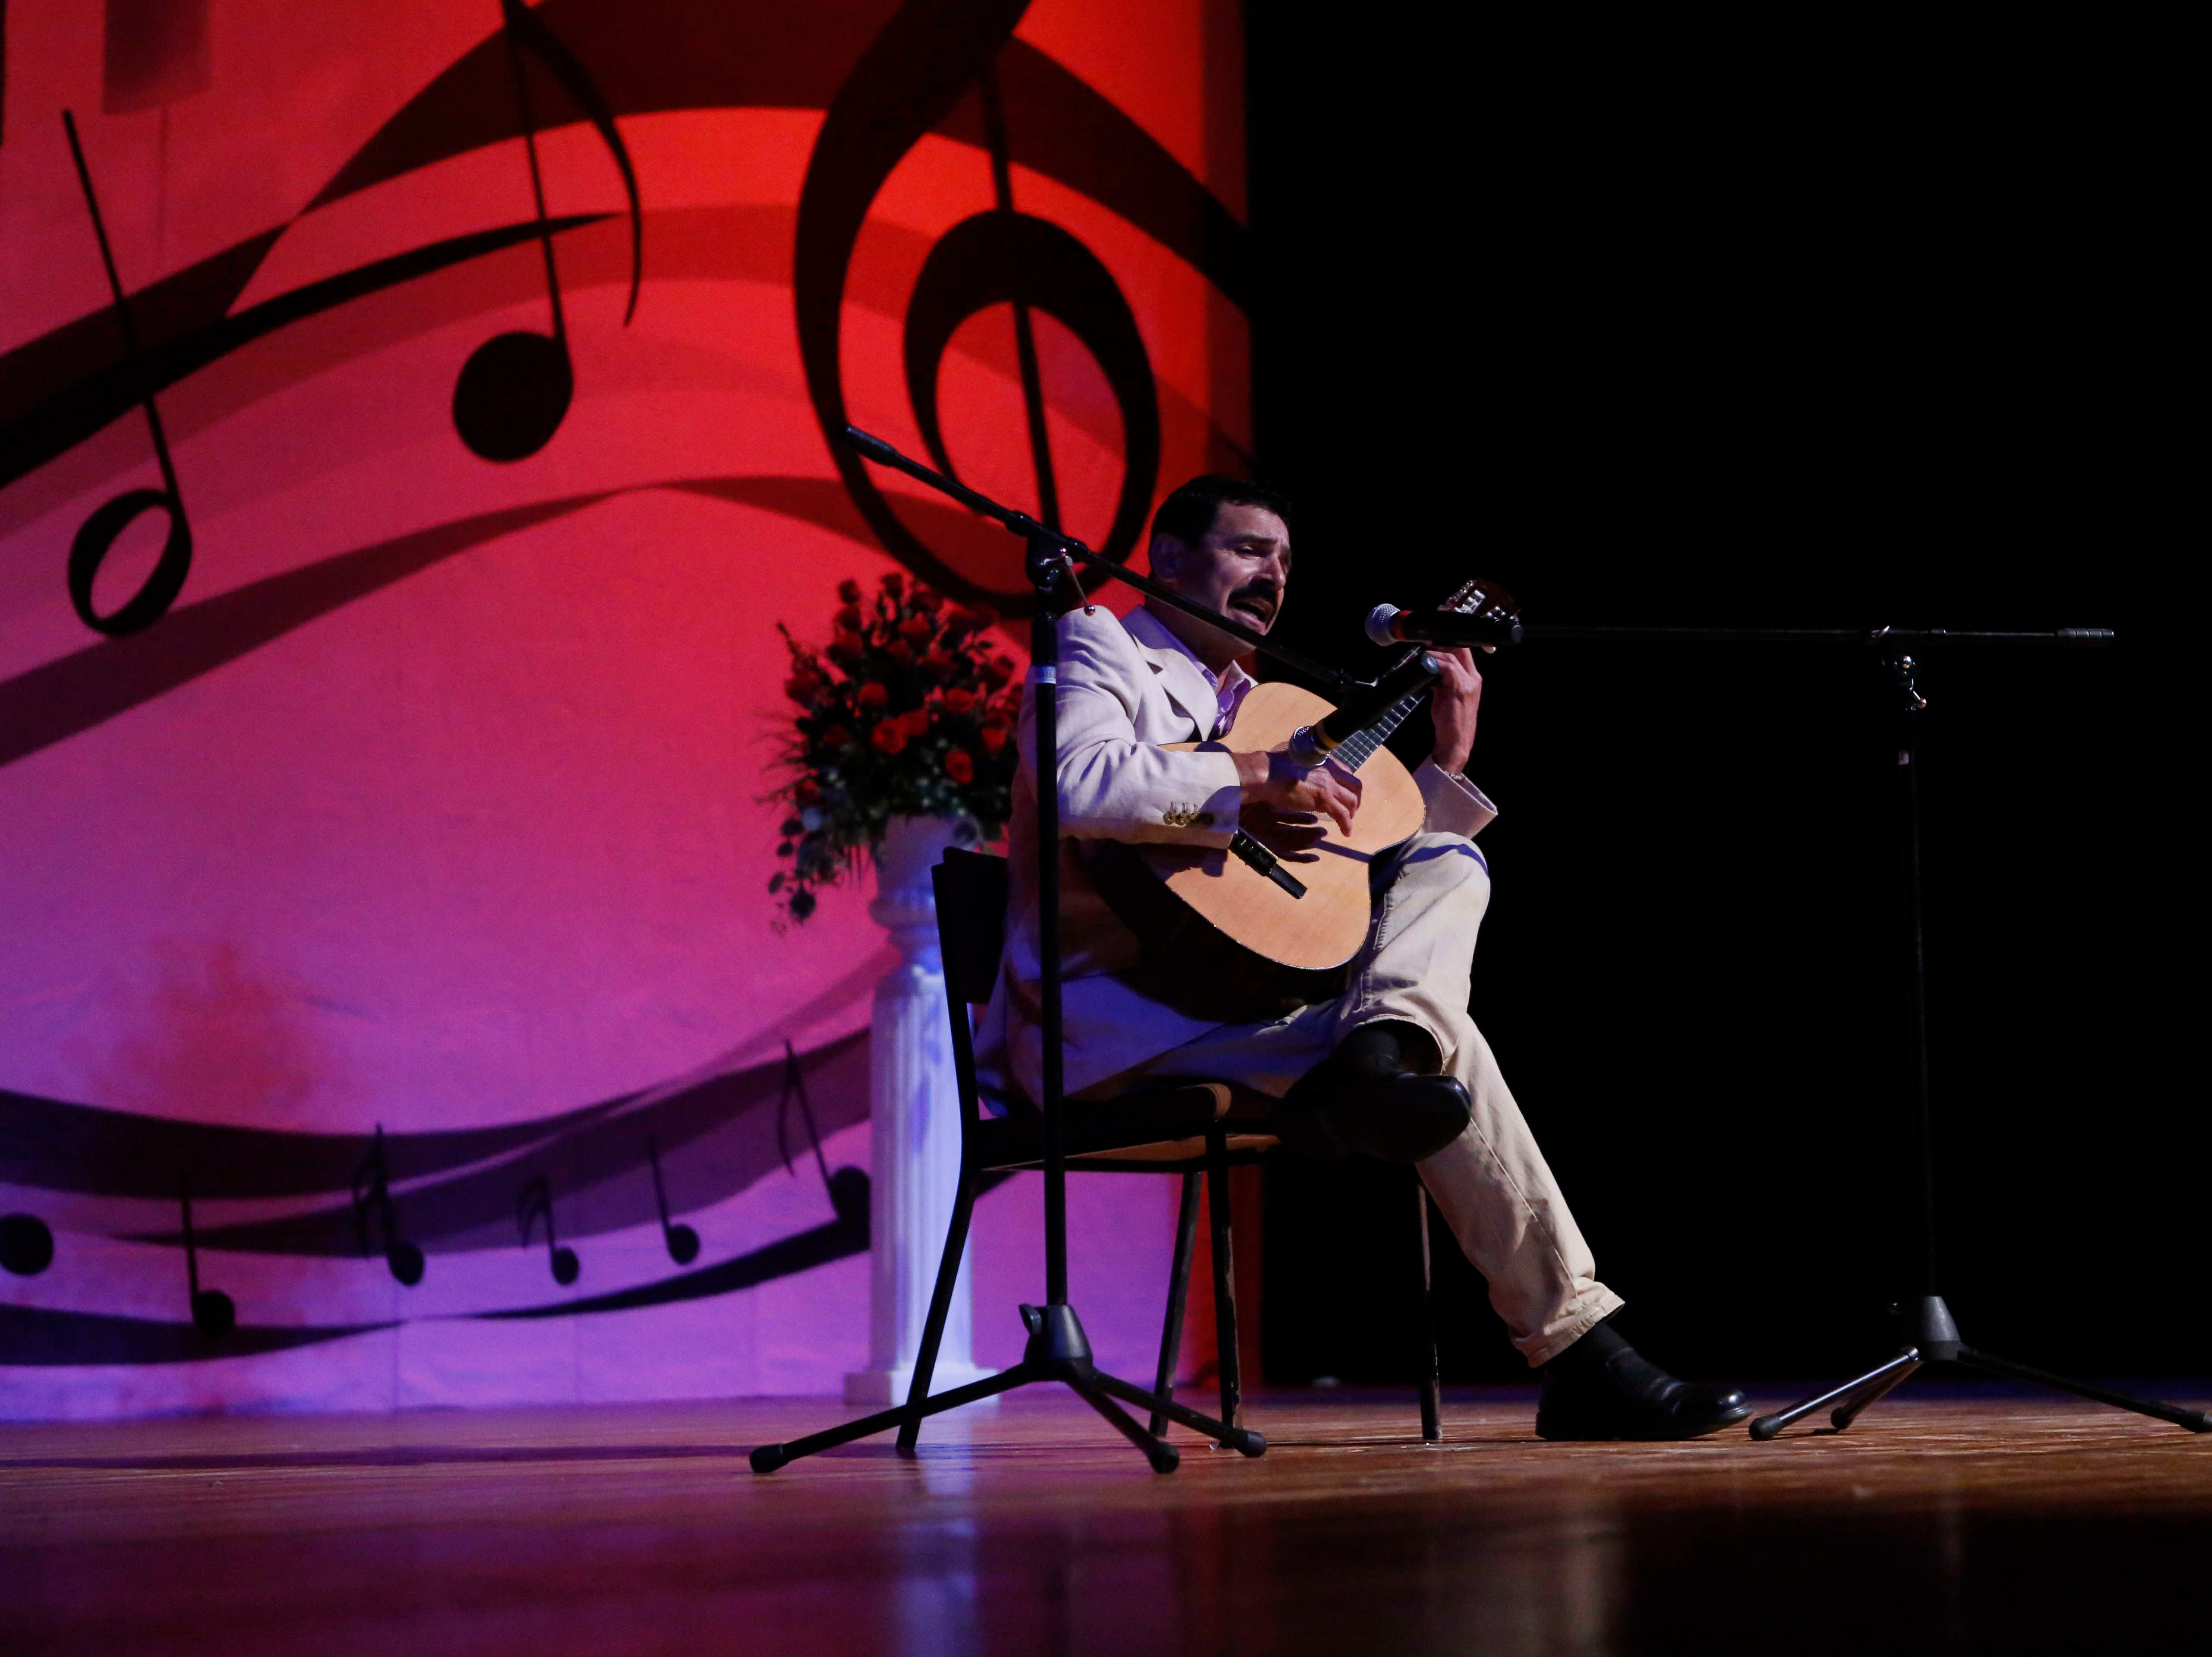 Francisco Penuelas sings as he plays his guitar during the 12th annual Noche Bohemia at Sherwood Hall on Saturday, April 27, 2019 in Salinas, Calif.